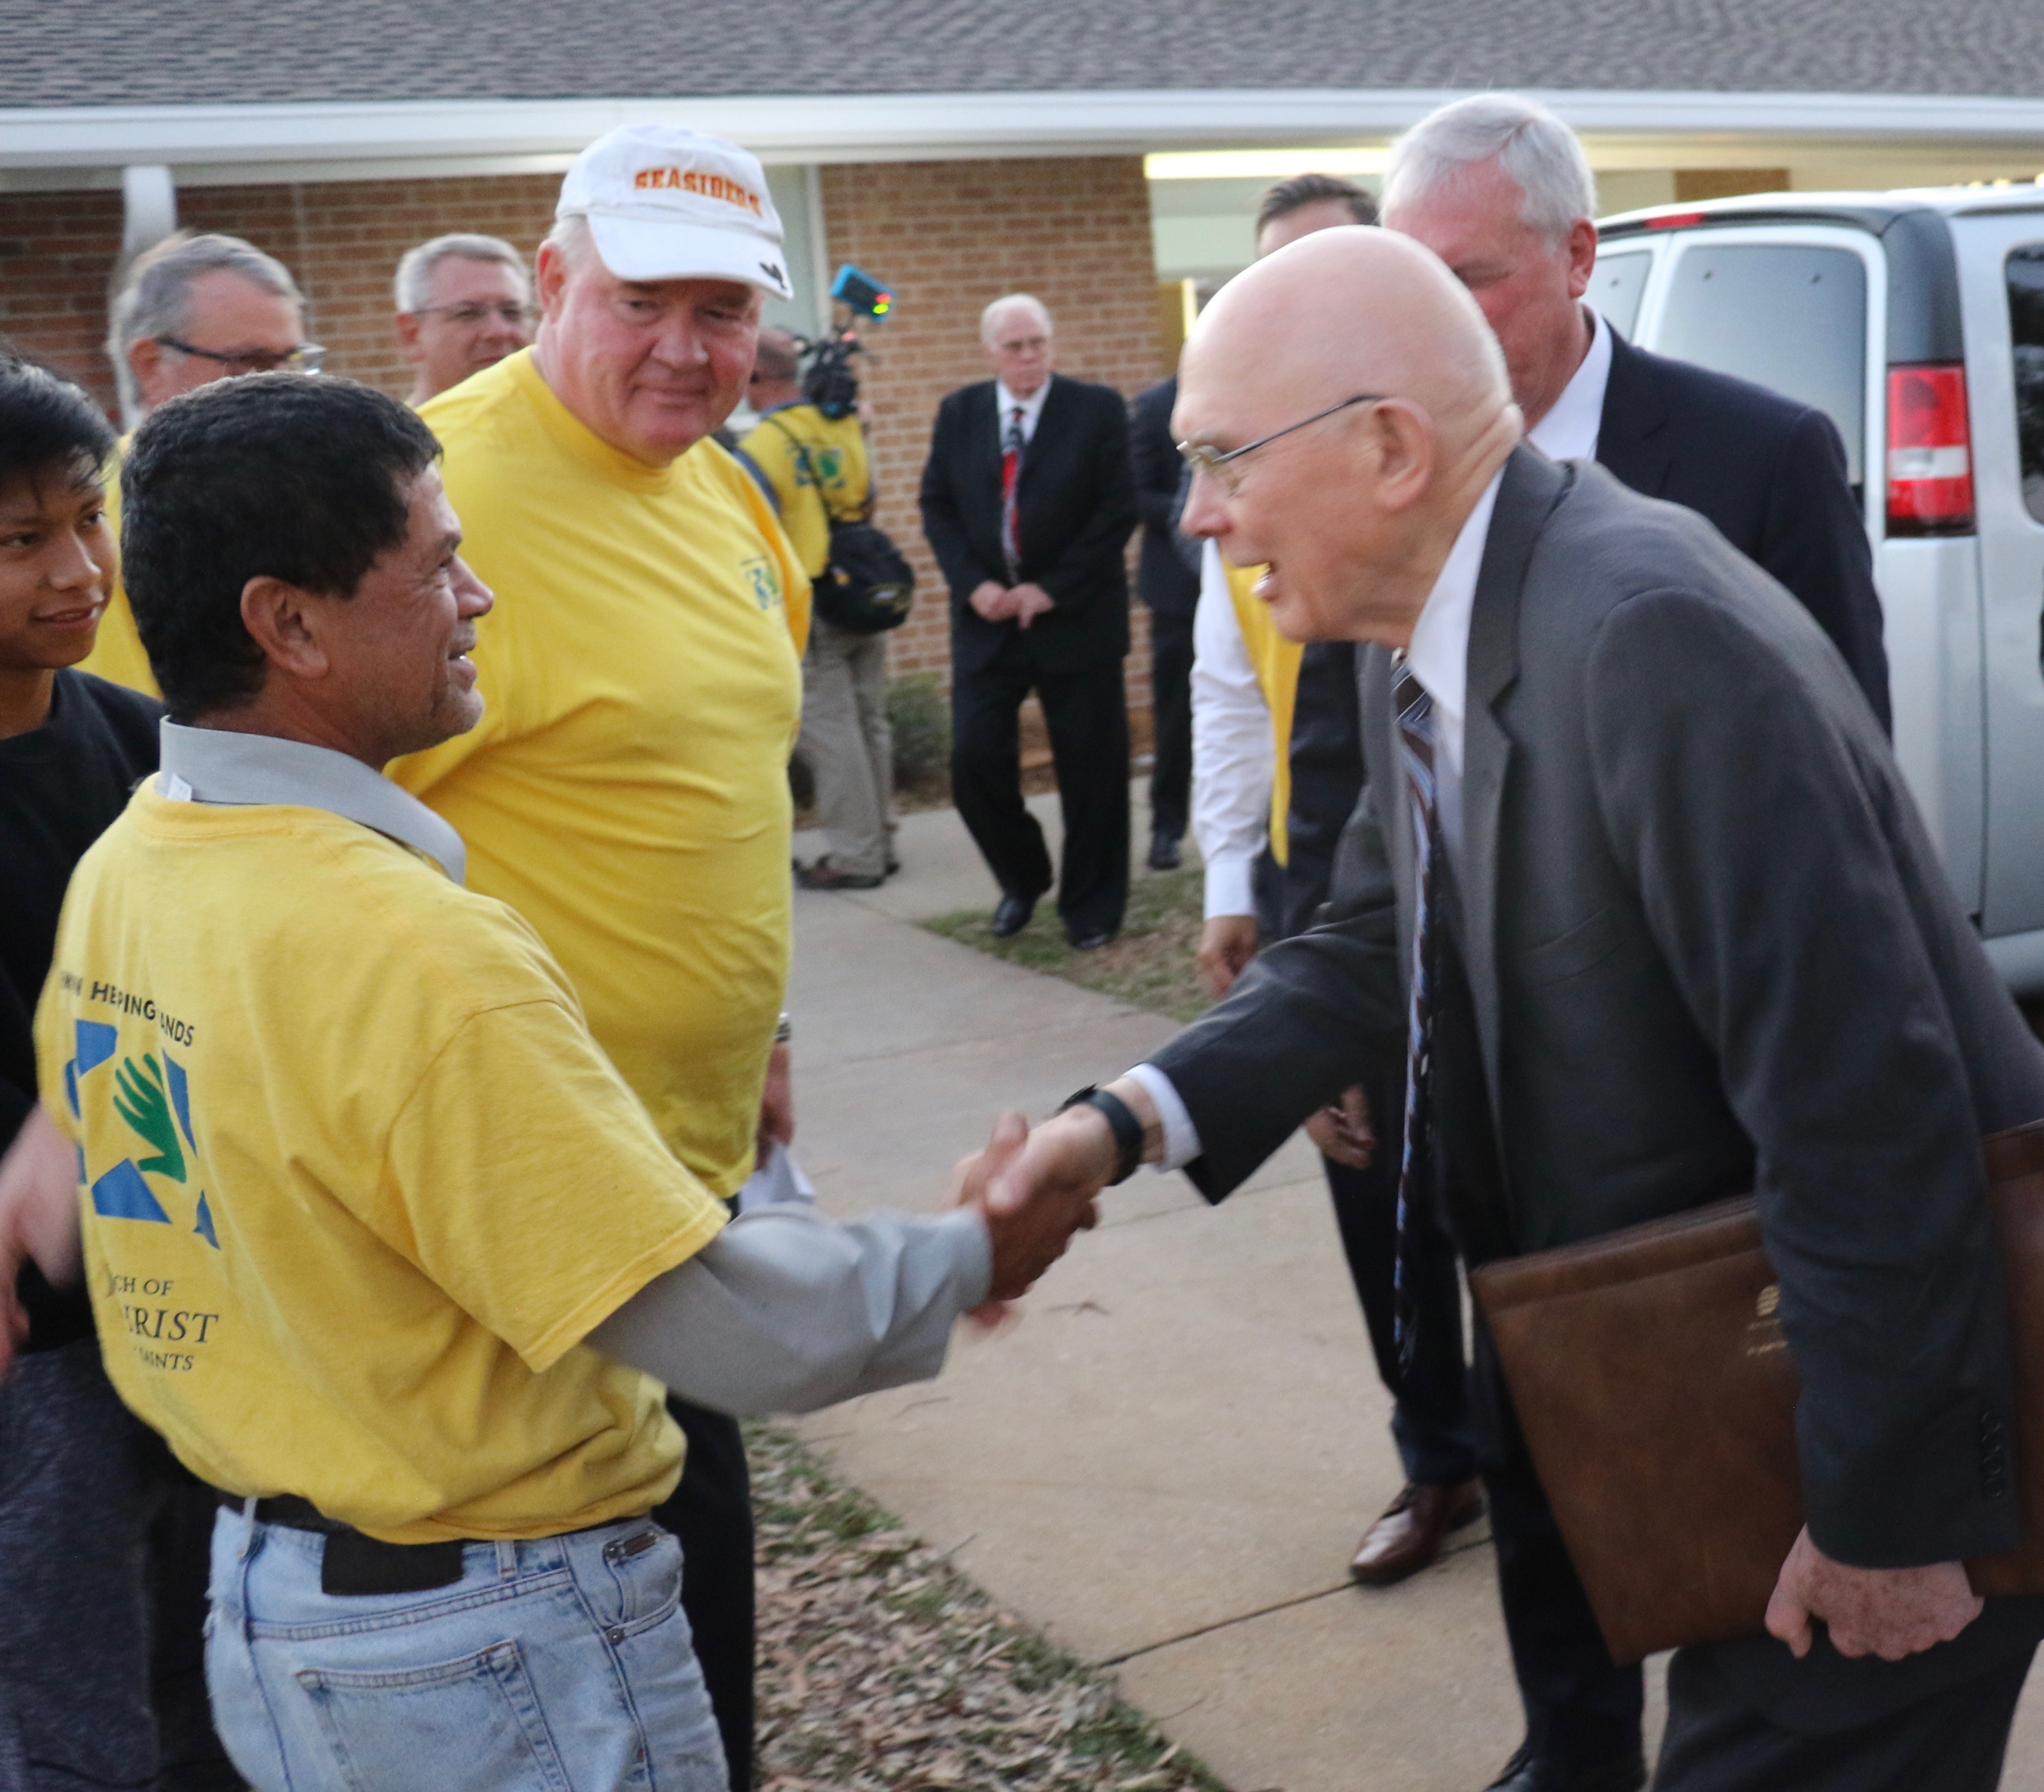 President Dallin H. Oaks, first counselor in the First Presidency of The Church of Jesus Christ of Latter-day Saints, greets a Helping Hands worker Oct. 21, 2018 at the Panama City Florida Stake Center.